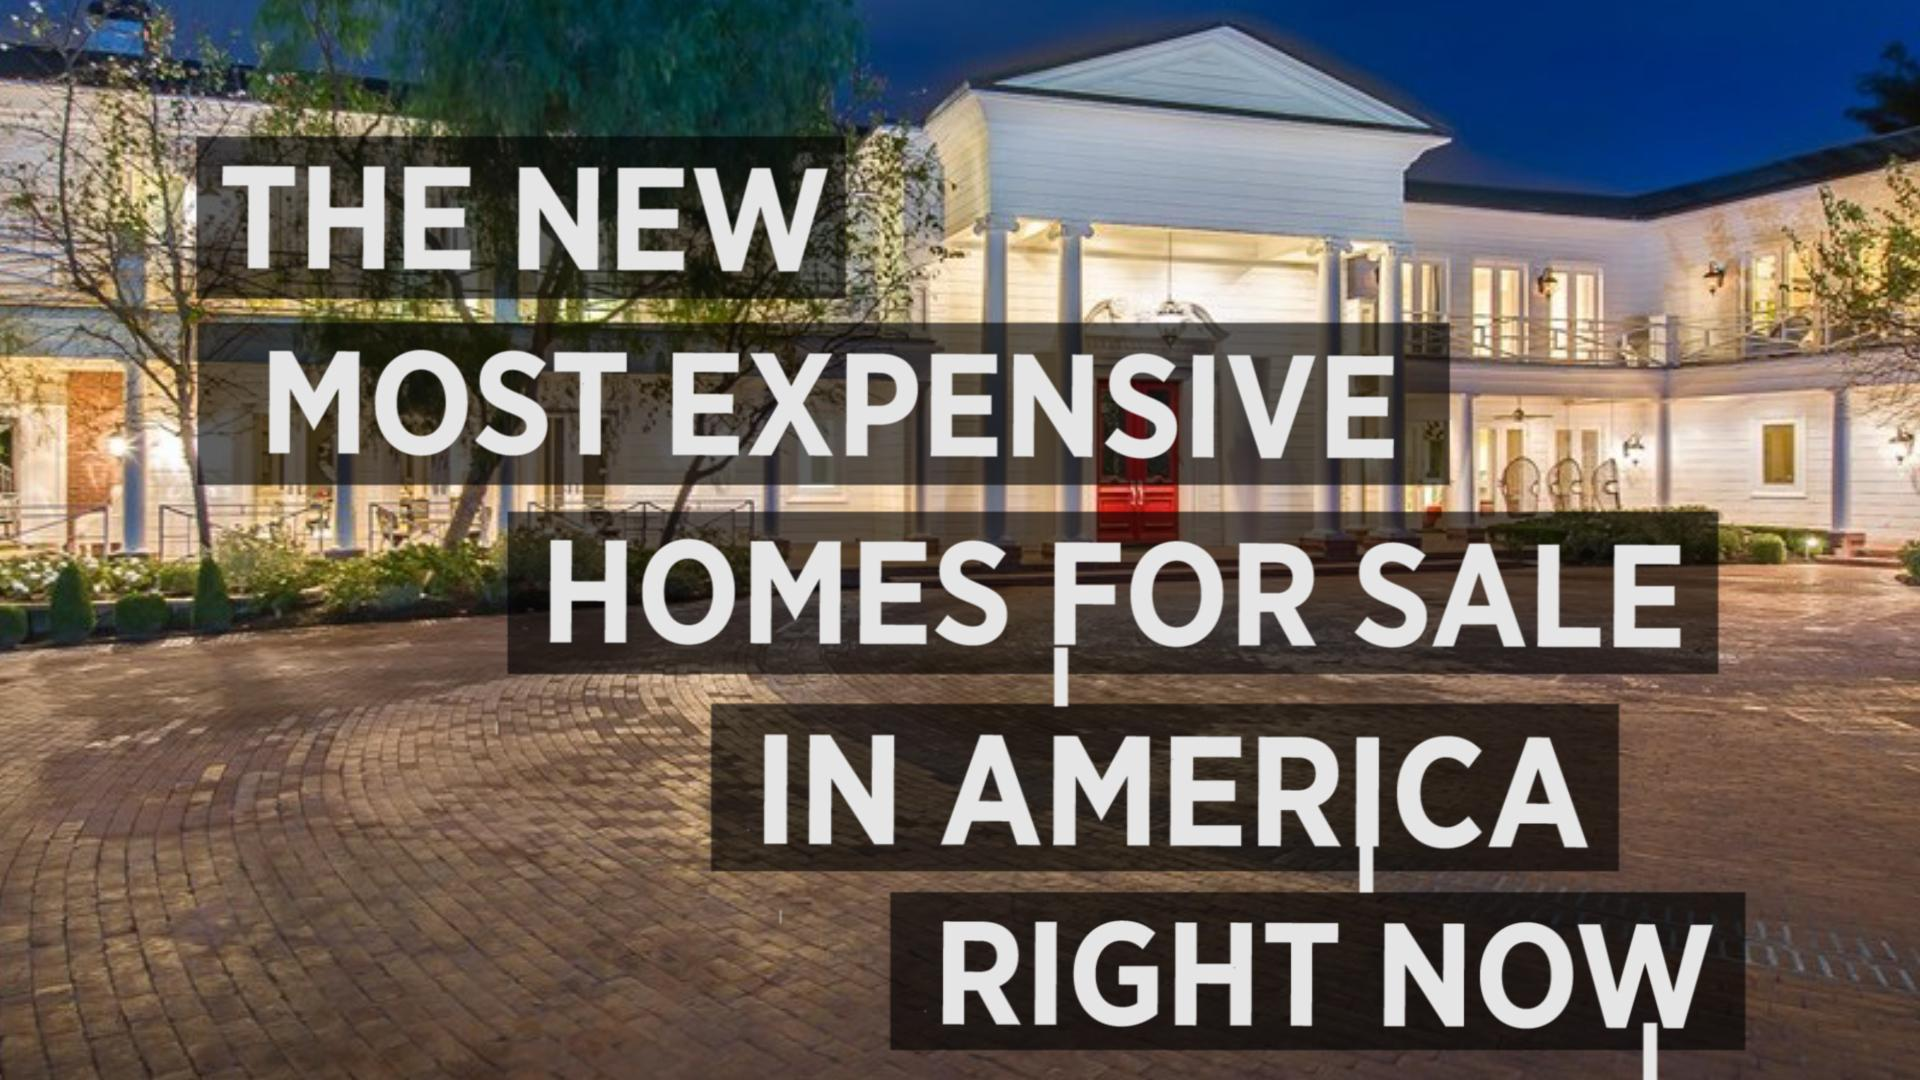 The New Most Expensive Homes For Sale In America